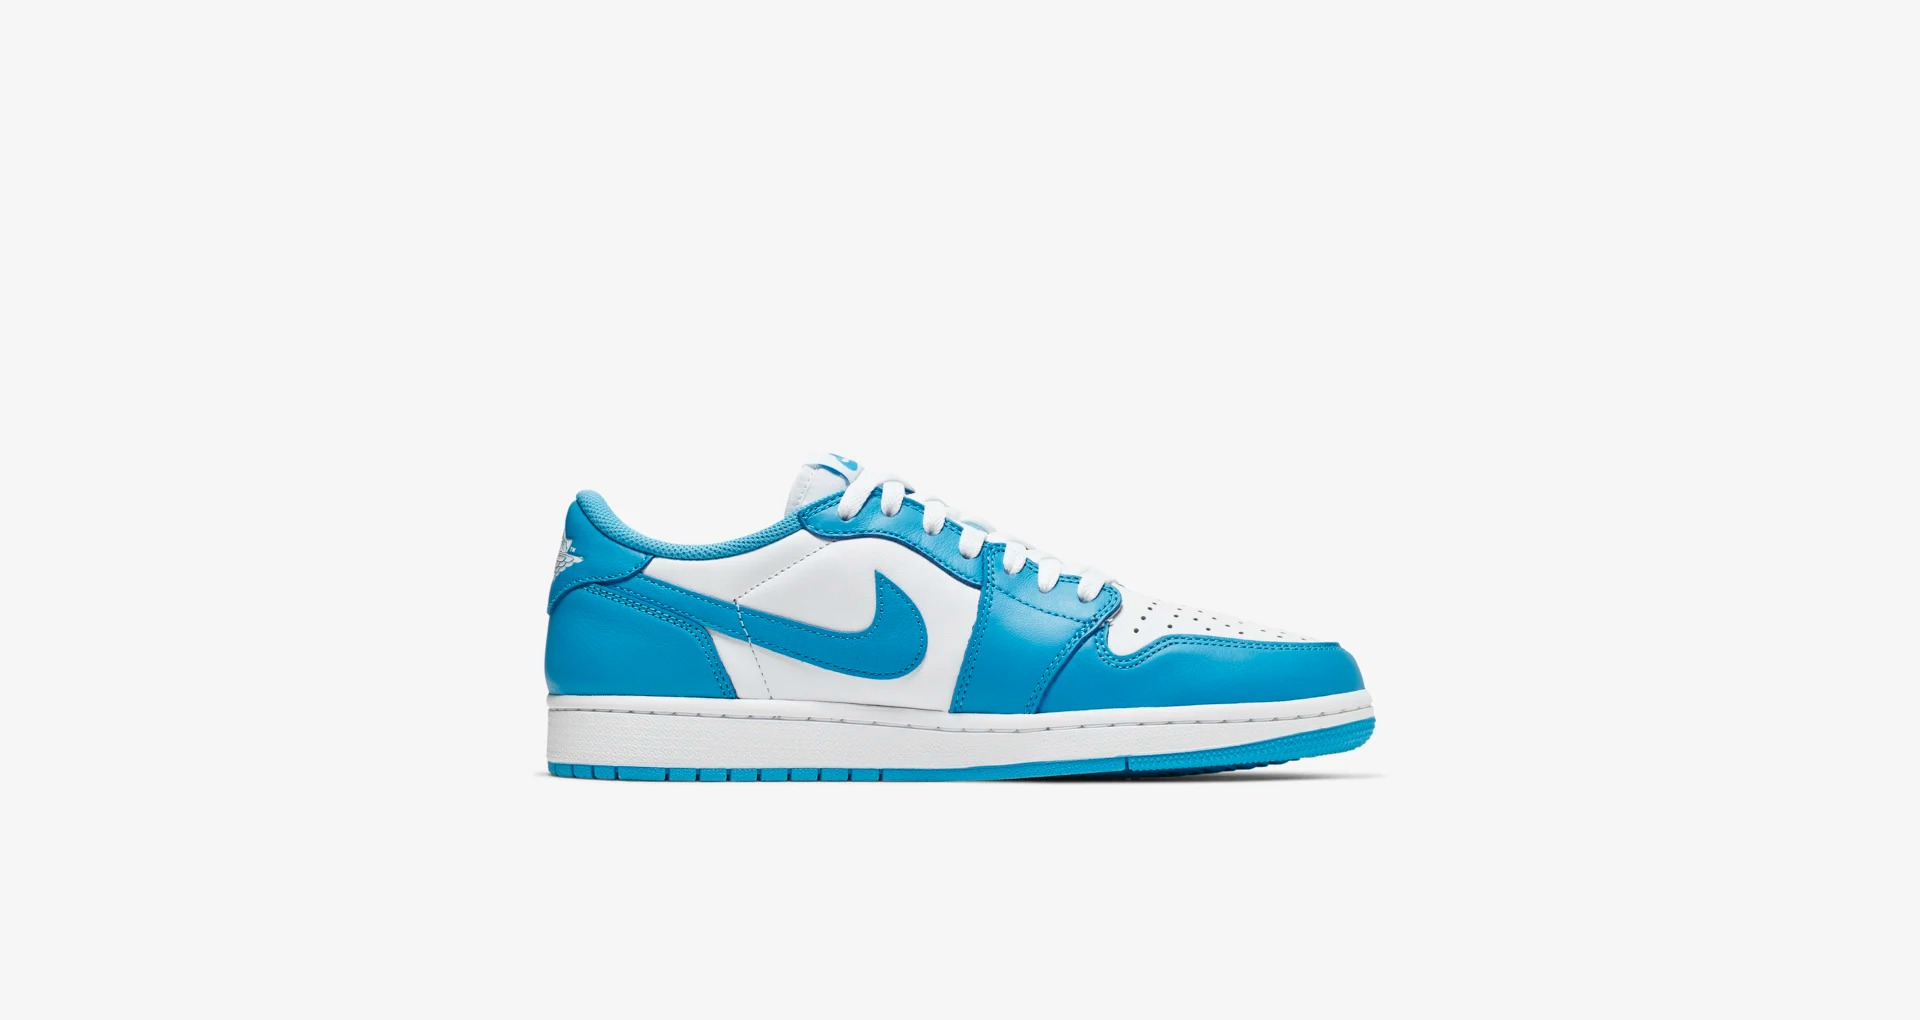 CJ7891 401 Air Jordan 1 Low SB Dark Powder Blue 4